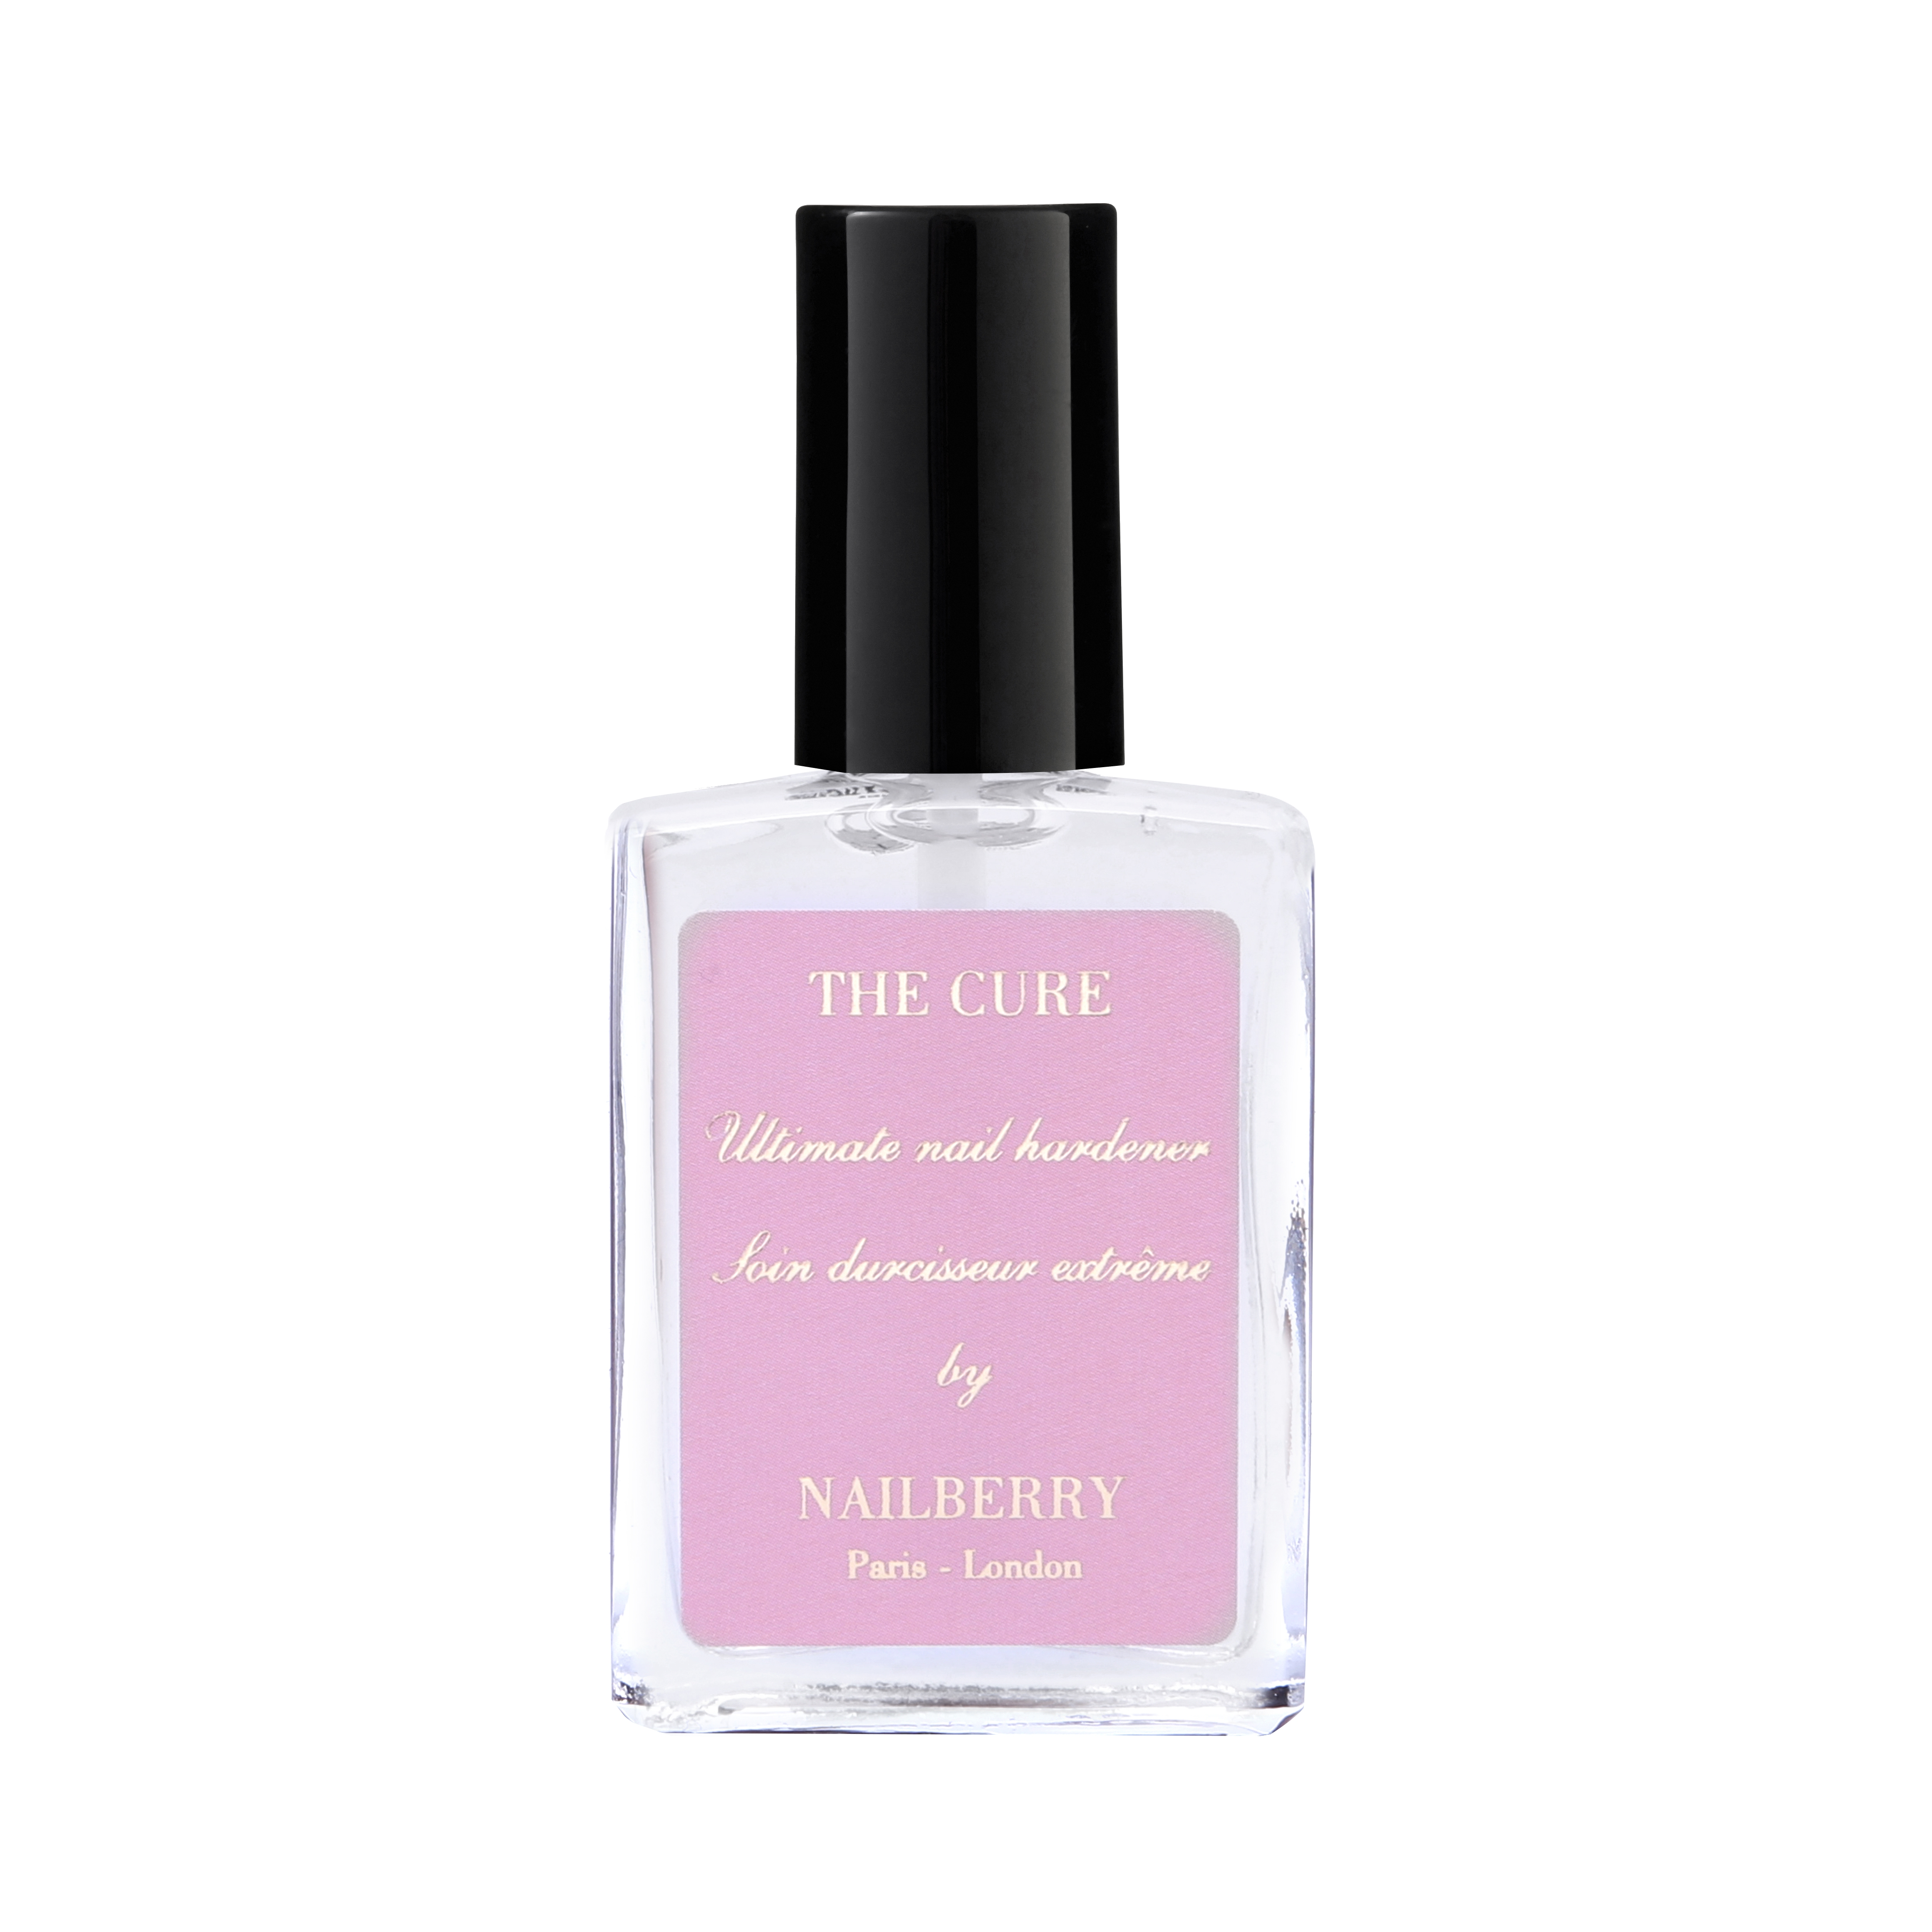 Nailberry The Cure, 15 ml